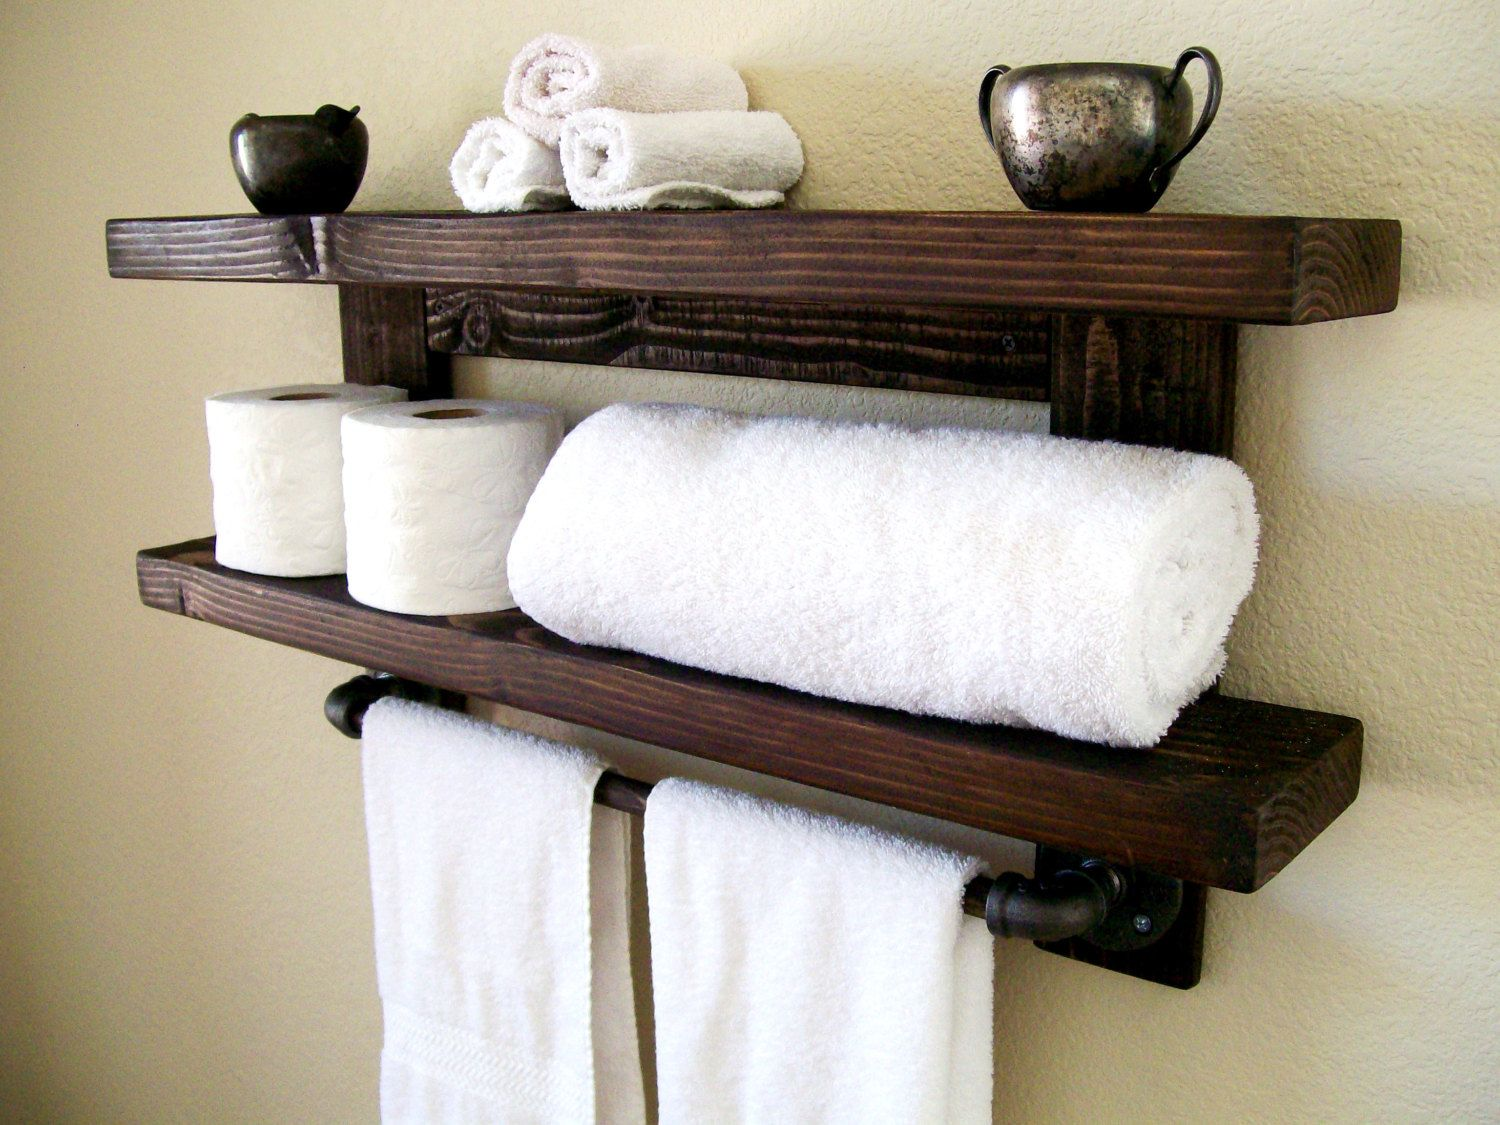 Rustic Floating Shelves Wall Shelf Wood Shelf Towel Rack Bathroom Shelves For Towels Floating Shelves Bathroom Rustic Wall Shelves